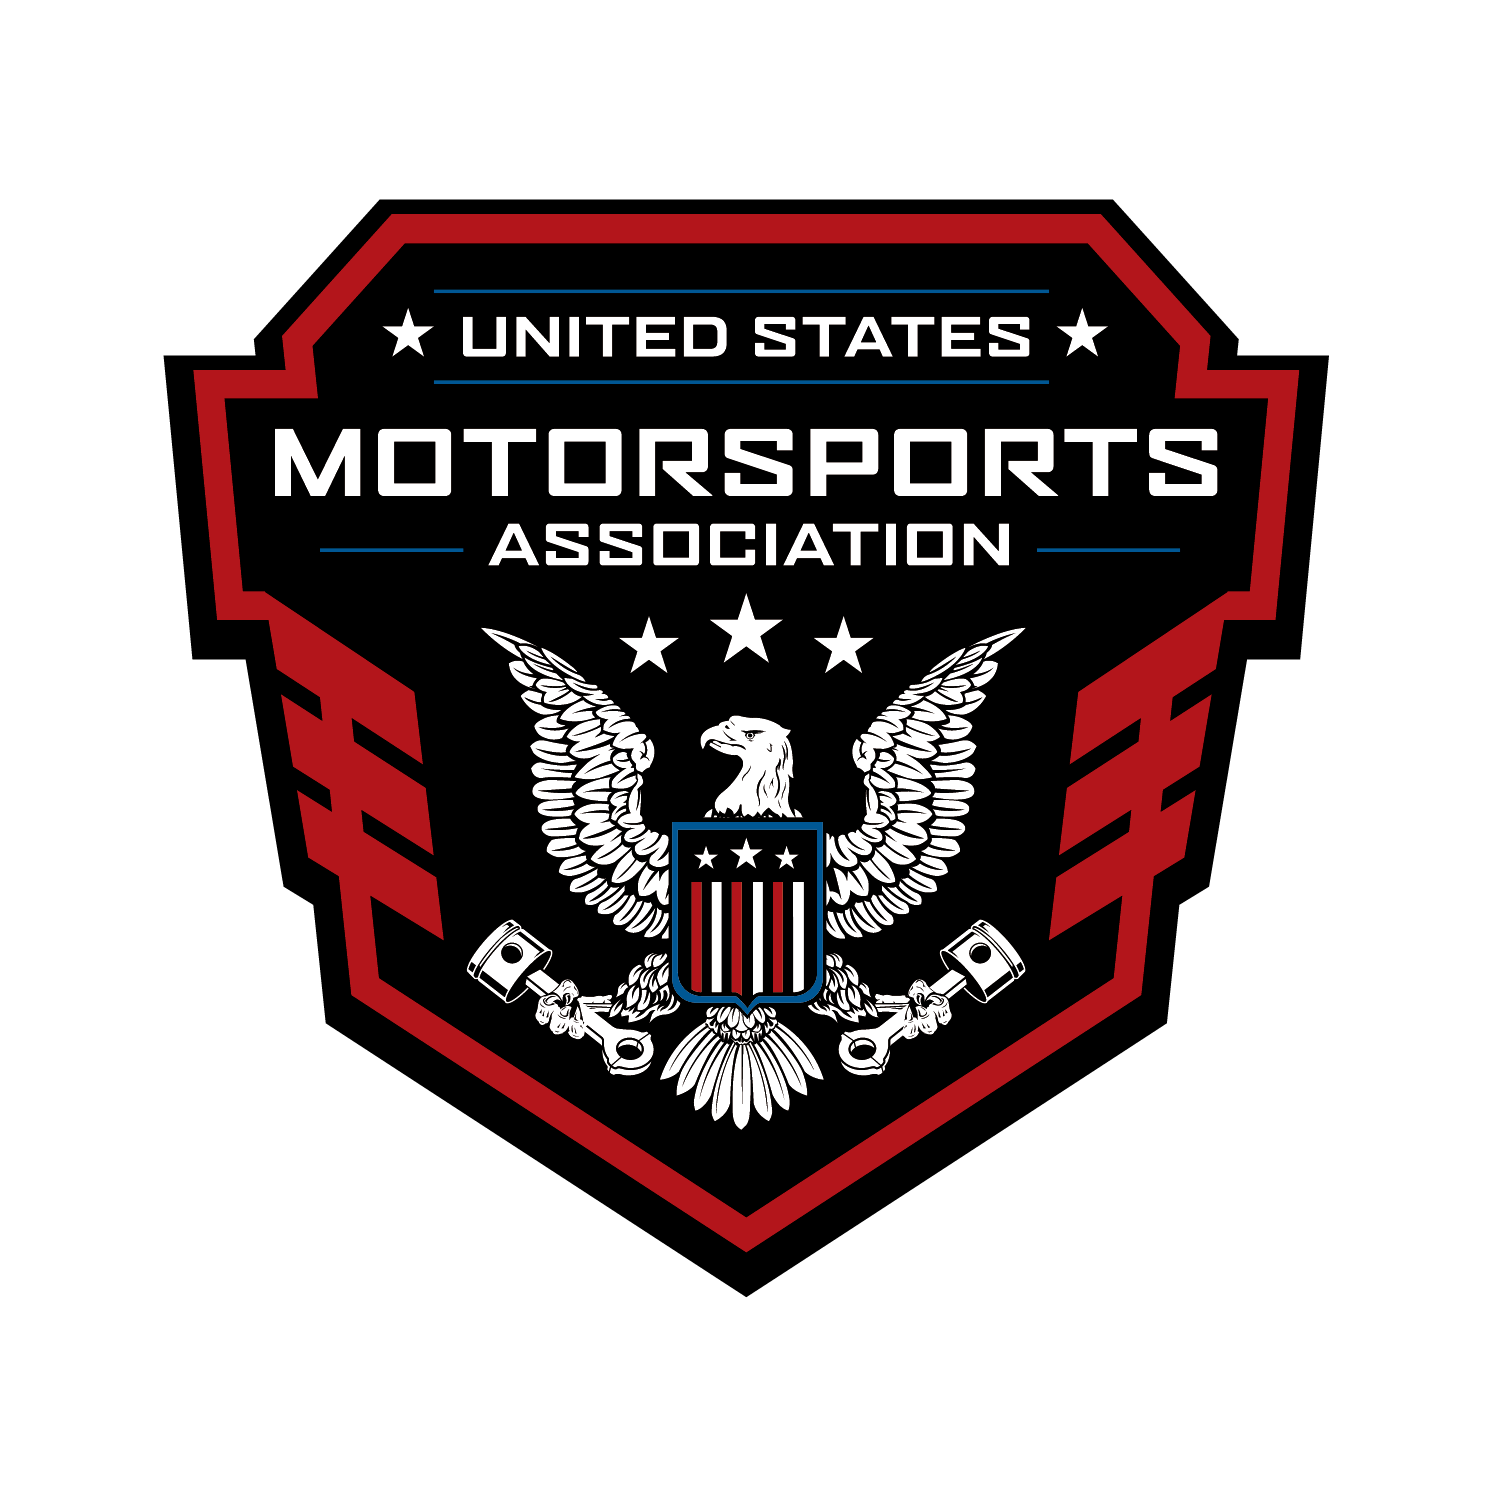 The United States Motorsports Association logo